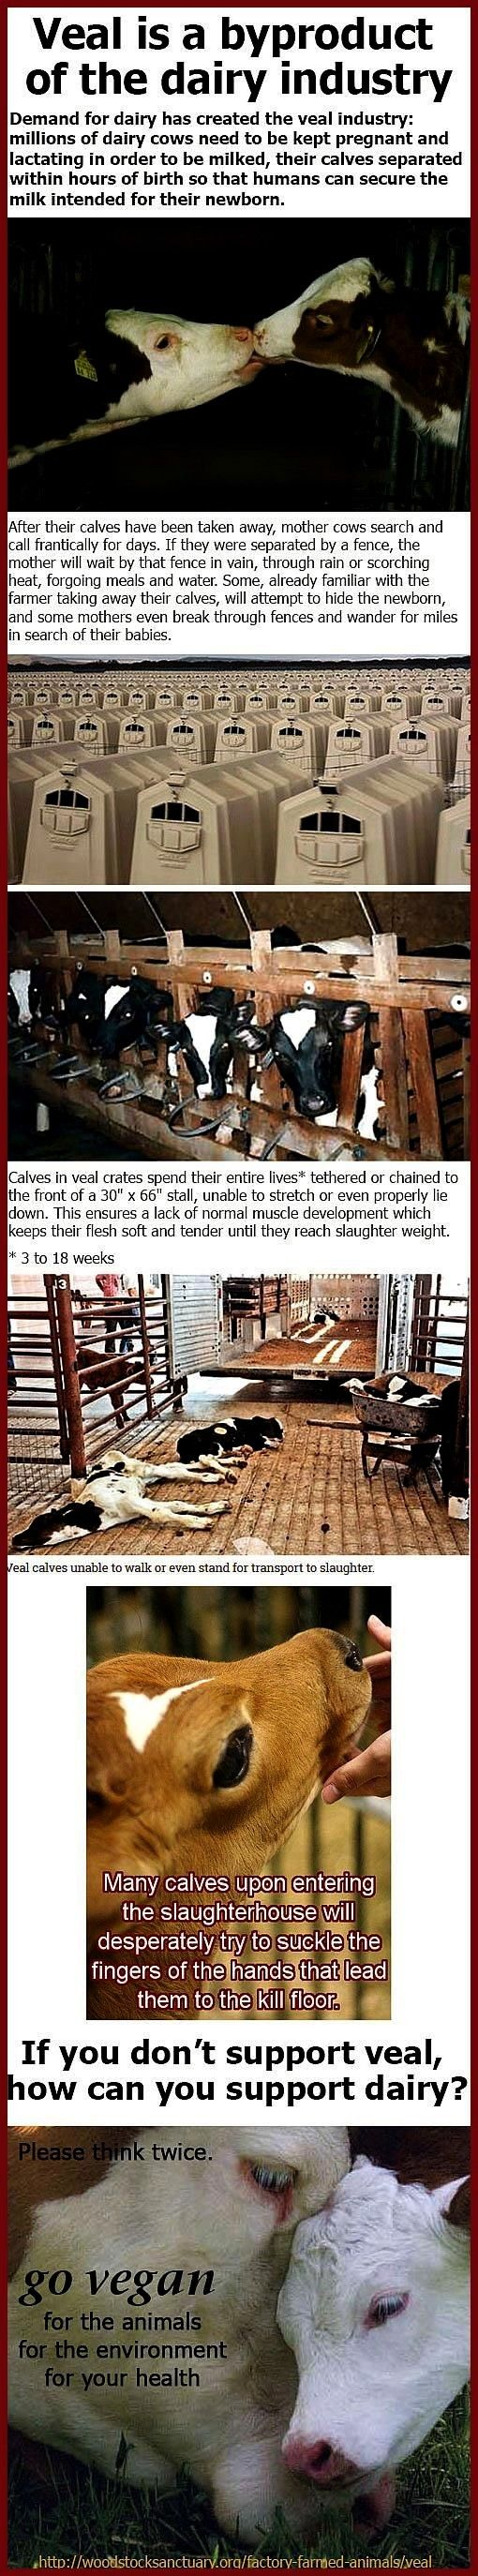 is no veal industry without the dairy industry  click for more facts  also see Mother Cow Hides New